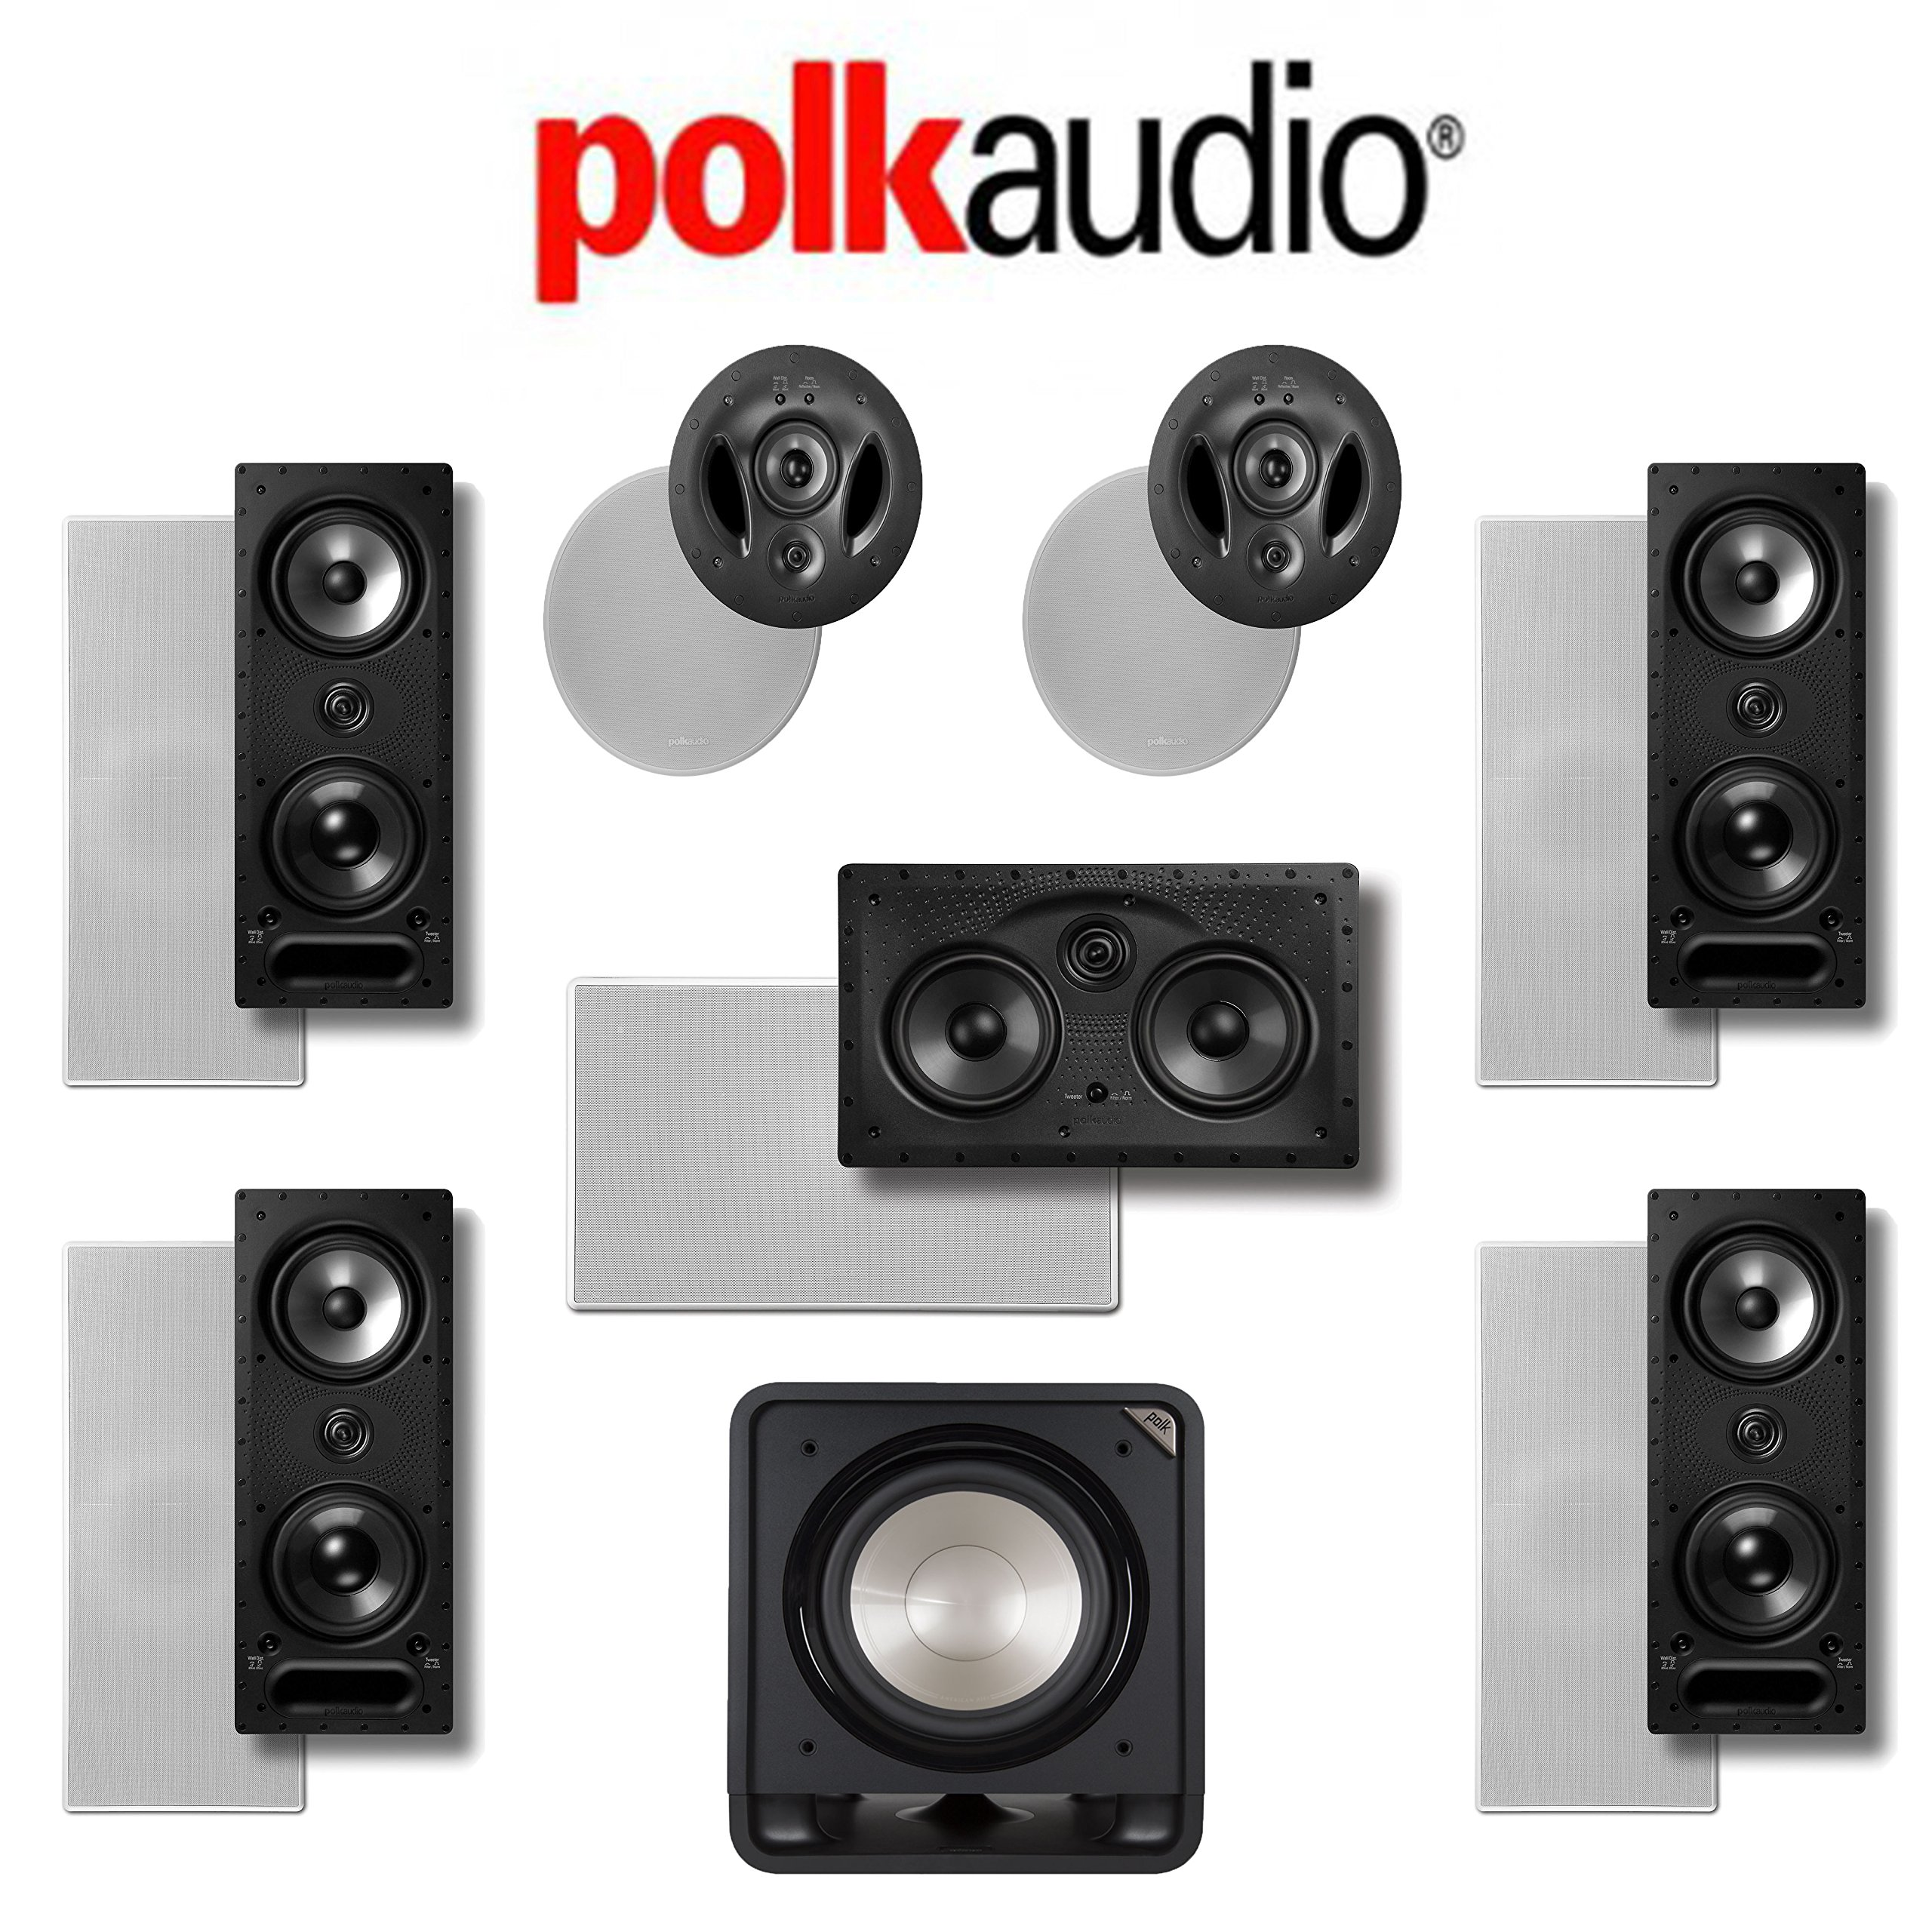 Polk Audio 265LS 7.1 Vanishing Series In-Wall / In-Ceiling Home Theater System (265-LS + 255C-LS + 900-LS + HTS12) by Polk Audio